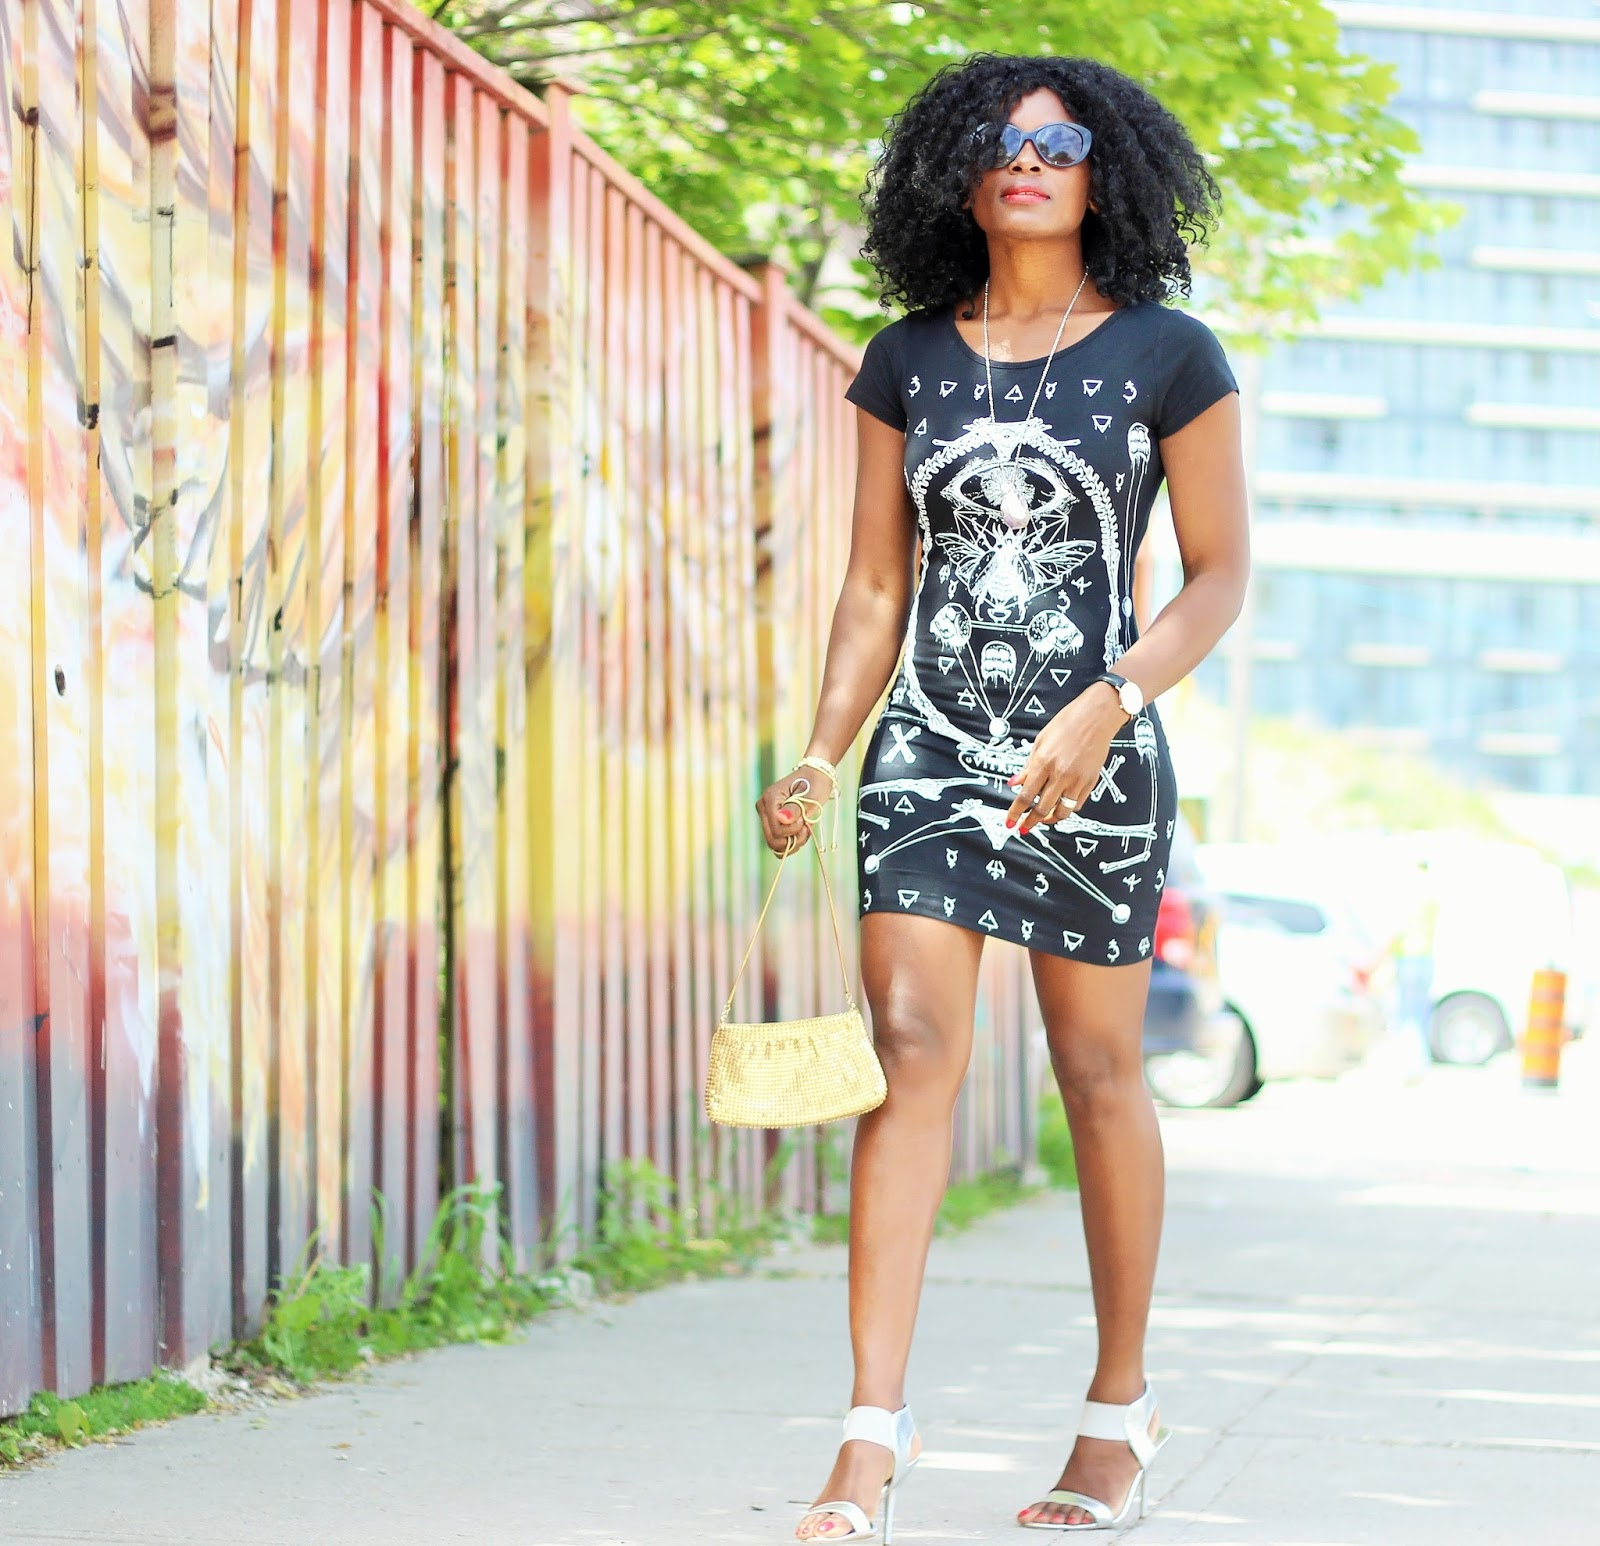 T-shirt dress by Jawbreaker Clothing